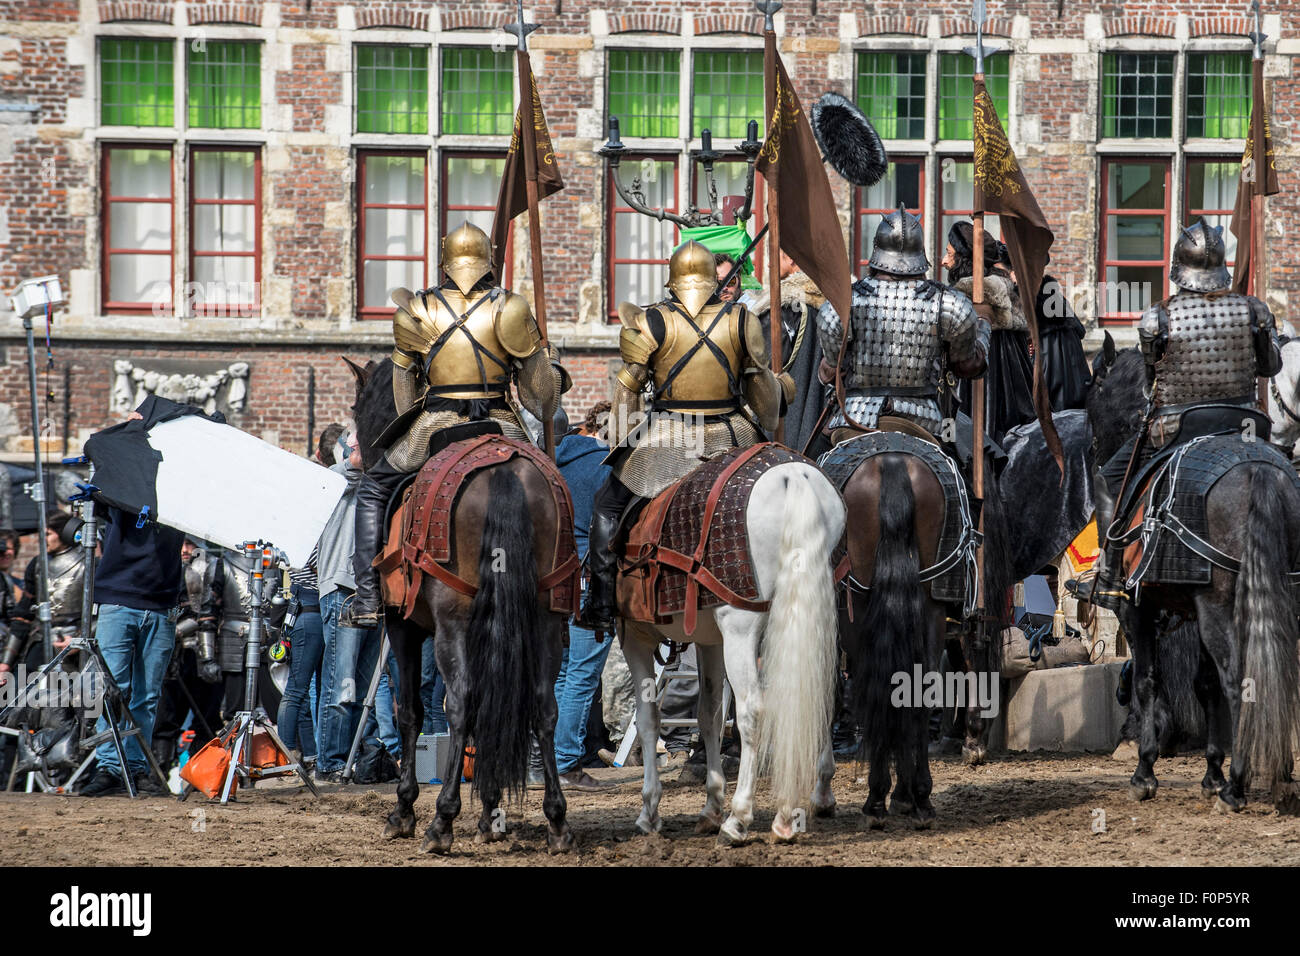 Ghent, Belgium. 19th August, 2015. Actor Adrien Brody in the role of Charles the Fifth on filmset in Ghent, Belgium - Stock Image